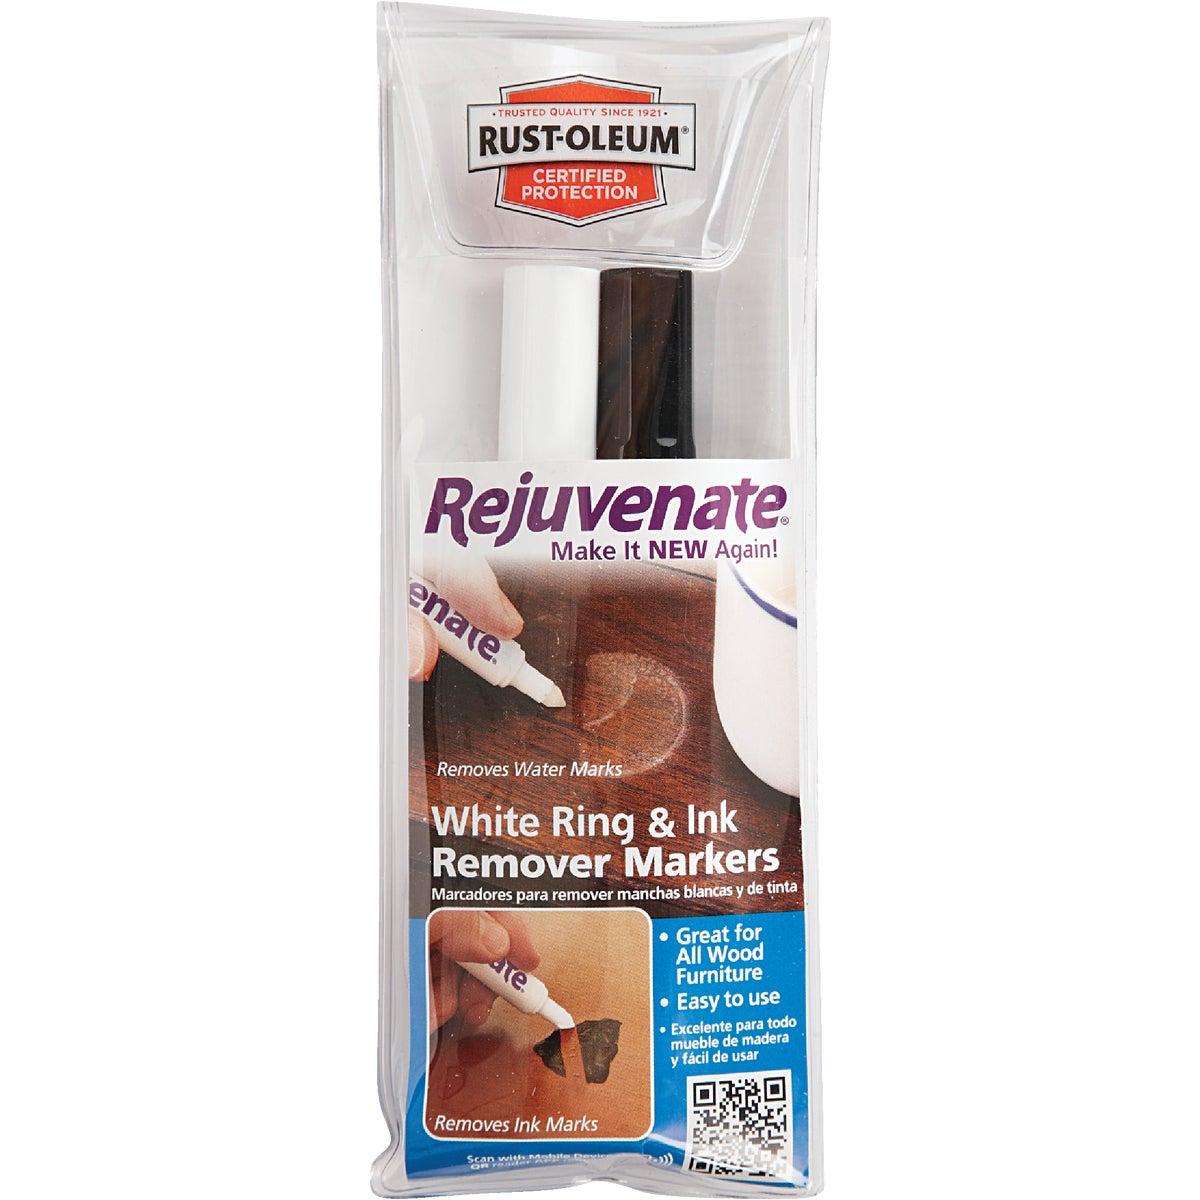 DARK INK & STAIN MARKERS - RJ2RM by For Life Products